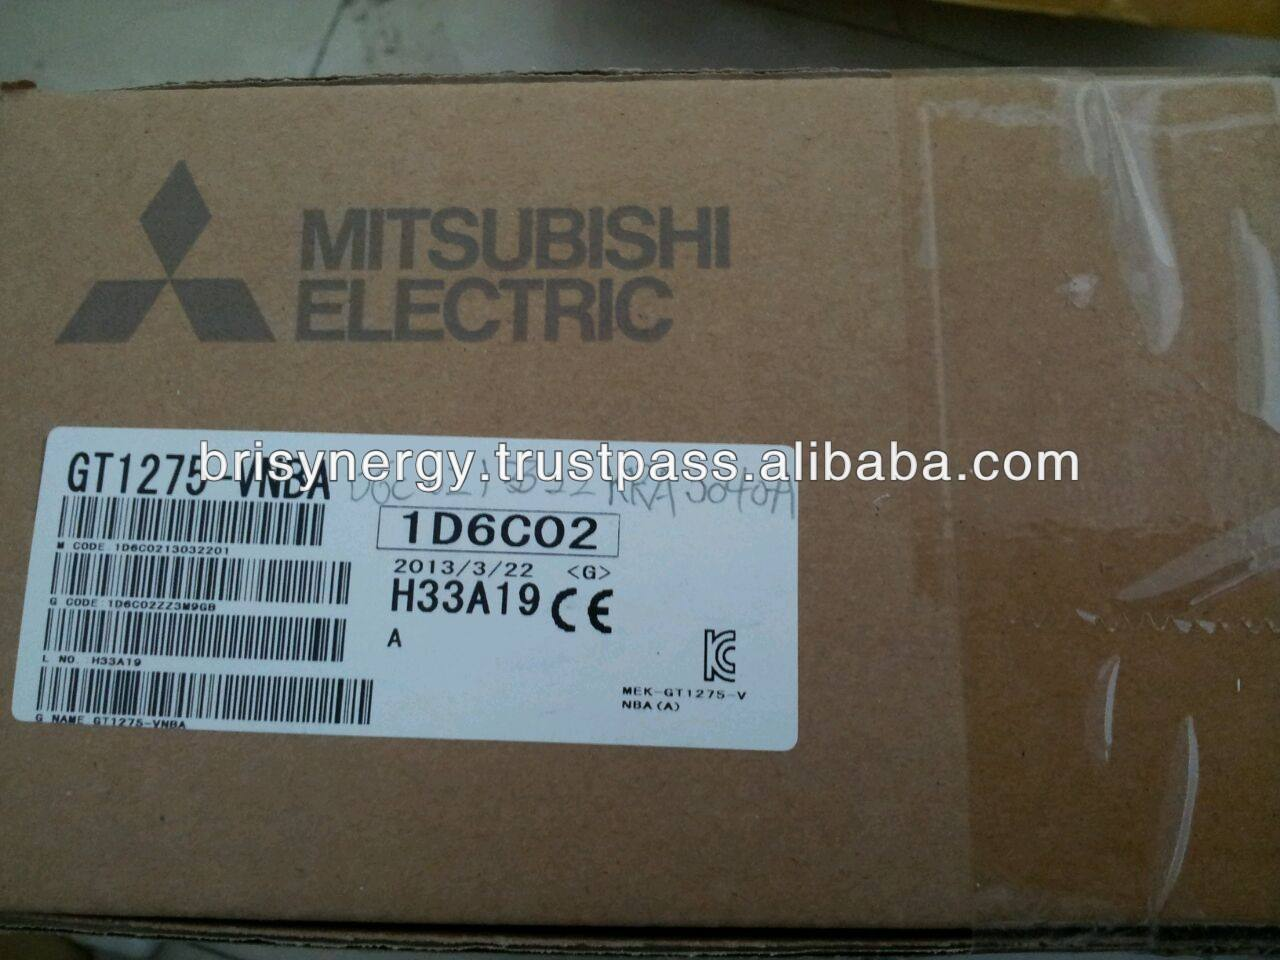 Mitsubishi HMI GT1275-VNBA Touch Screen/Touch Panle/Screen Display Genuine Macchina Umana Interfaccia di Alta Qualità